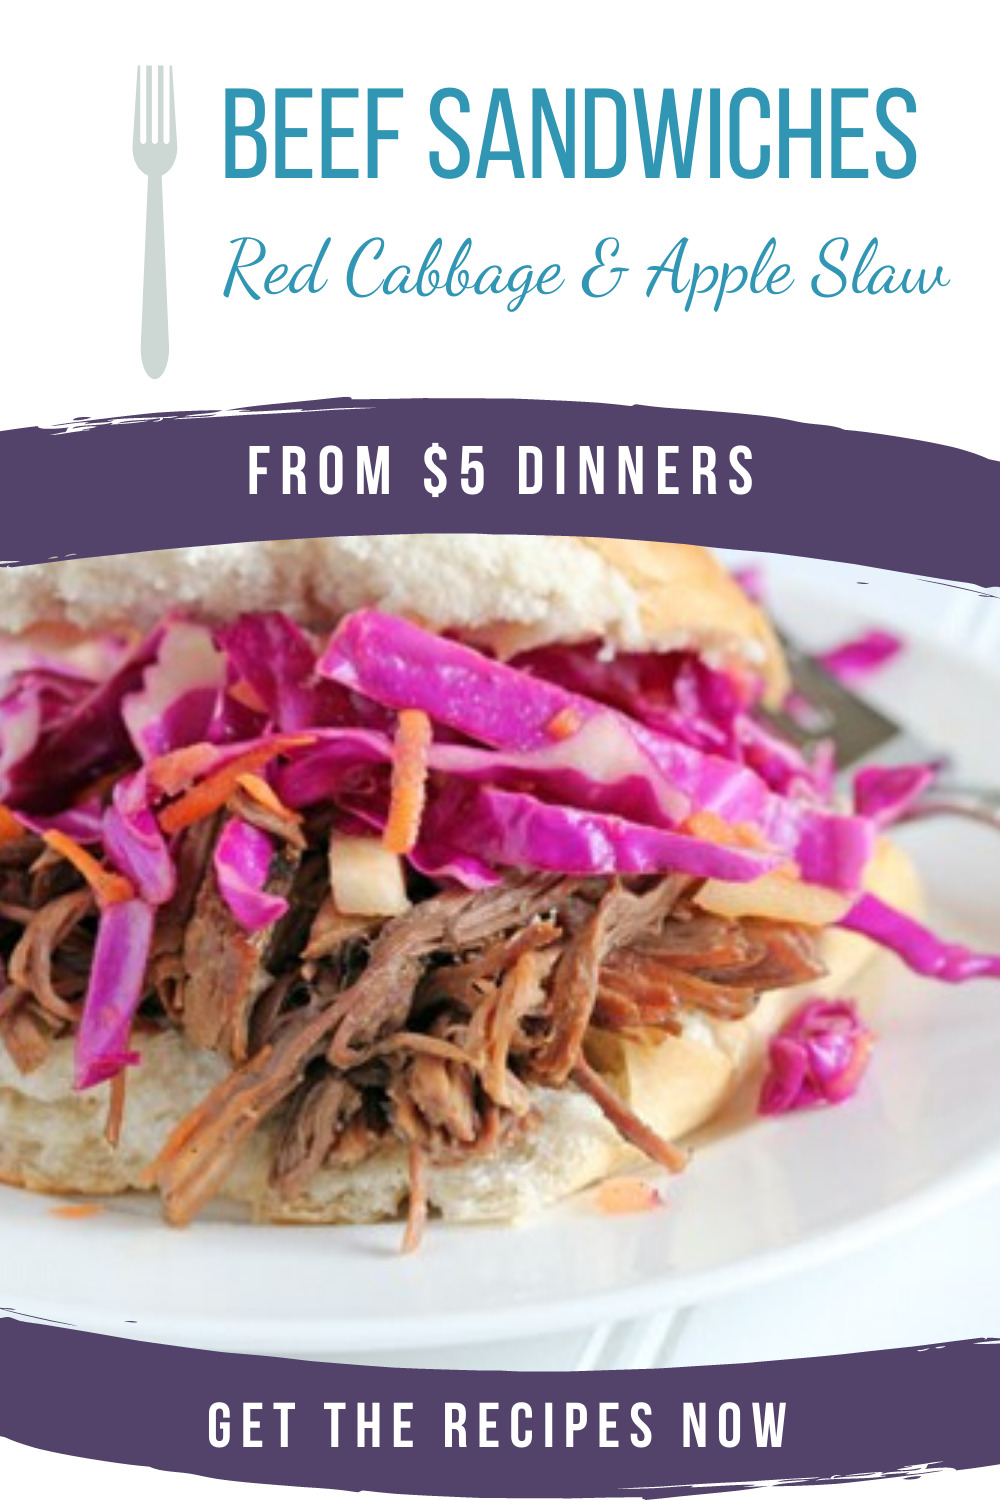 shredded beef sandwiches with red cabbage and apple slaw